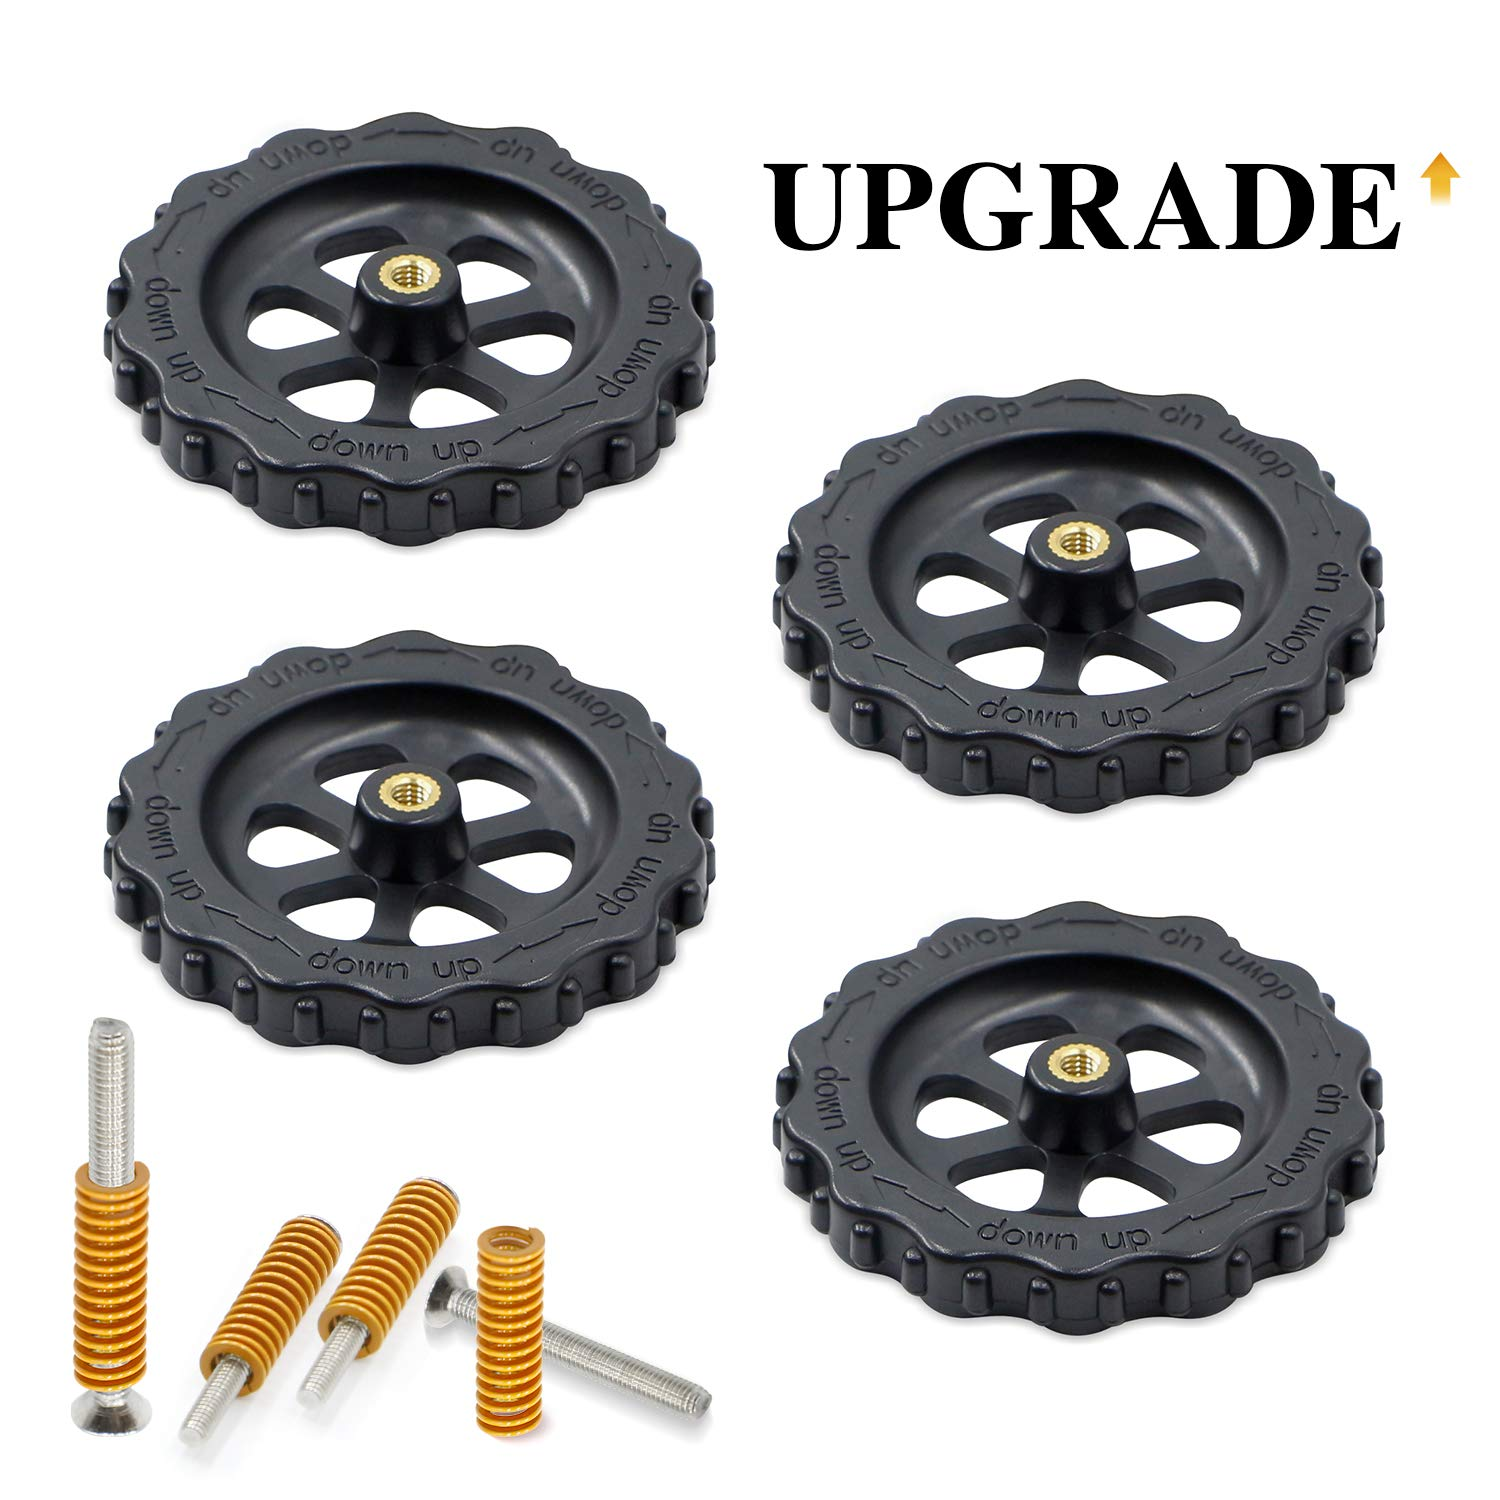 4pcs Hot Bed Spring For Ender 3//5 CR-10 Creality 4pcs Upgraded Leveling Nut